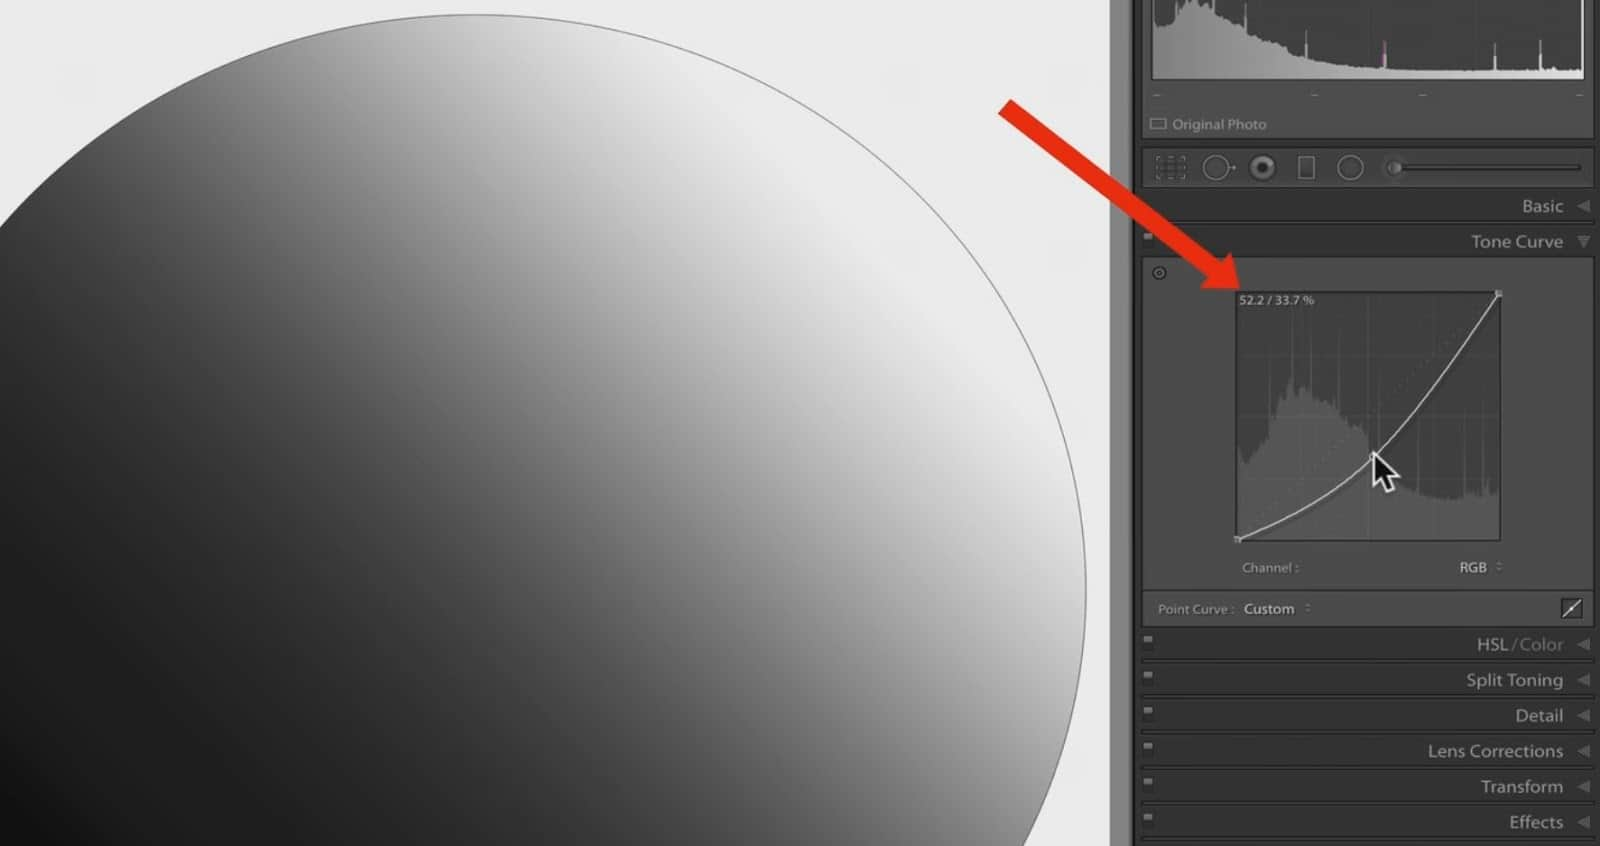 Changing Lightless in Curve - CreativeRAW